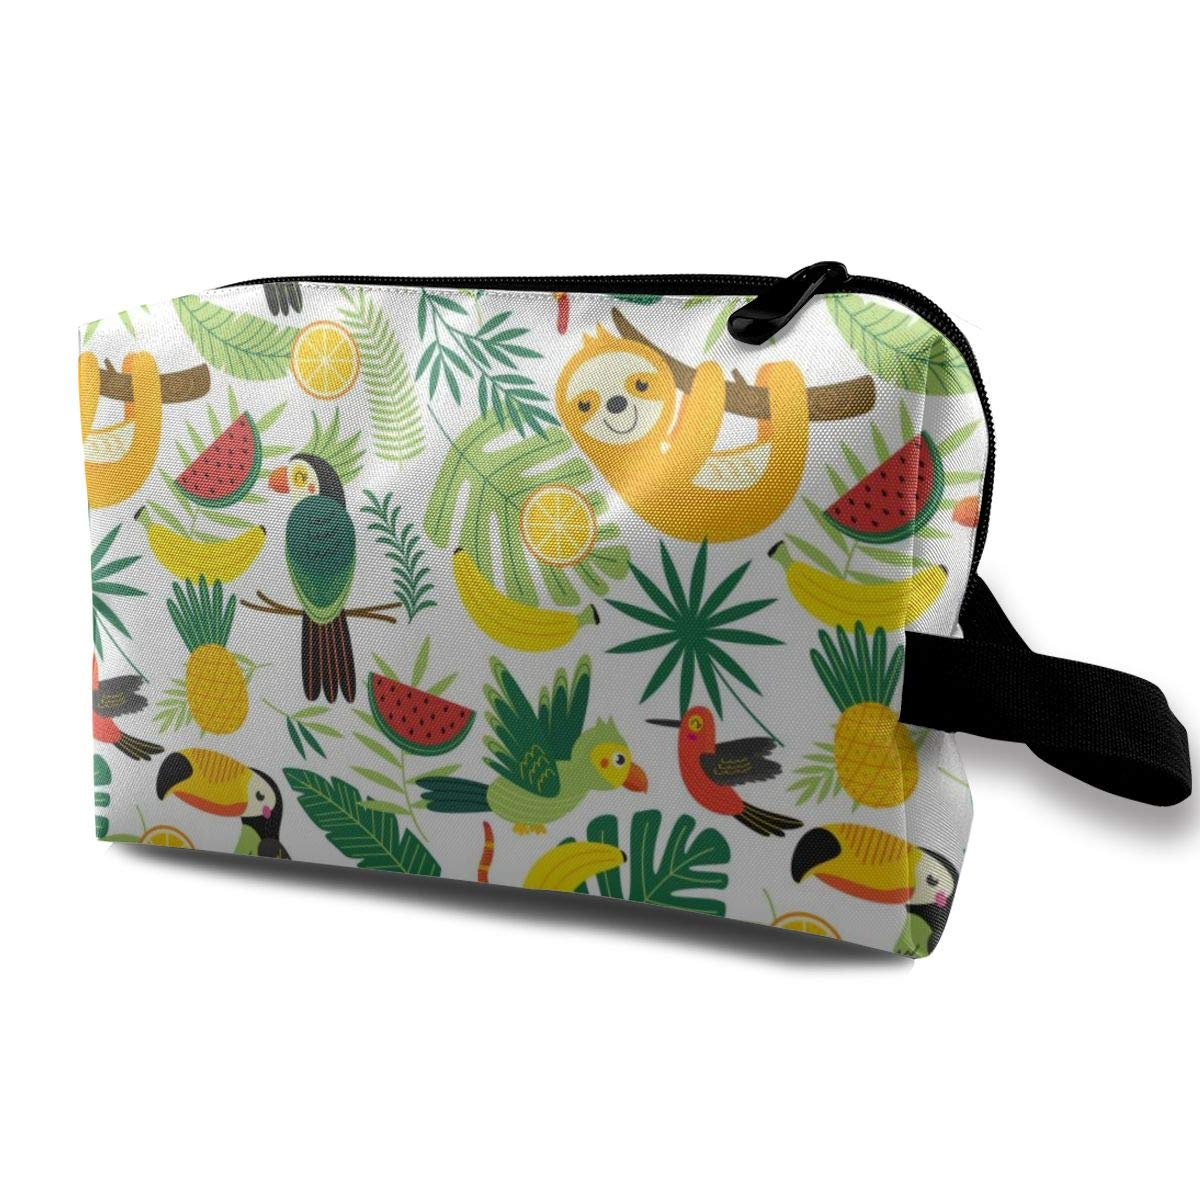 Tropical Animals Sloth And Toucan Cosmetic Bag Adorable Roomy Makeup Bags Travel Waterproof Toiletry Bag Accessories Organizer for Women Men Kid